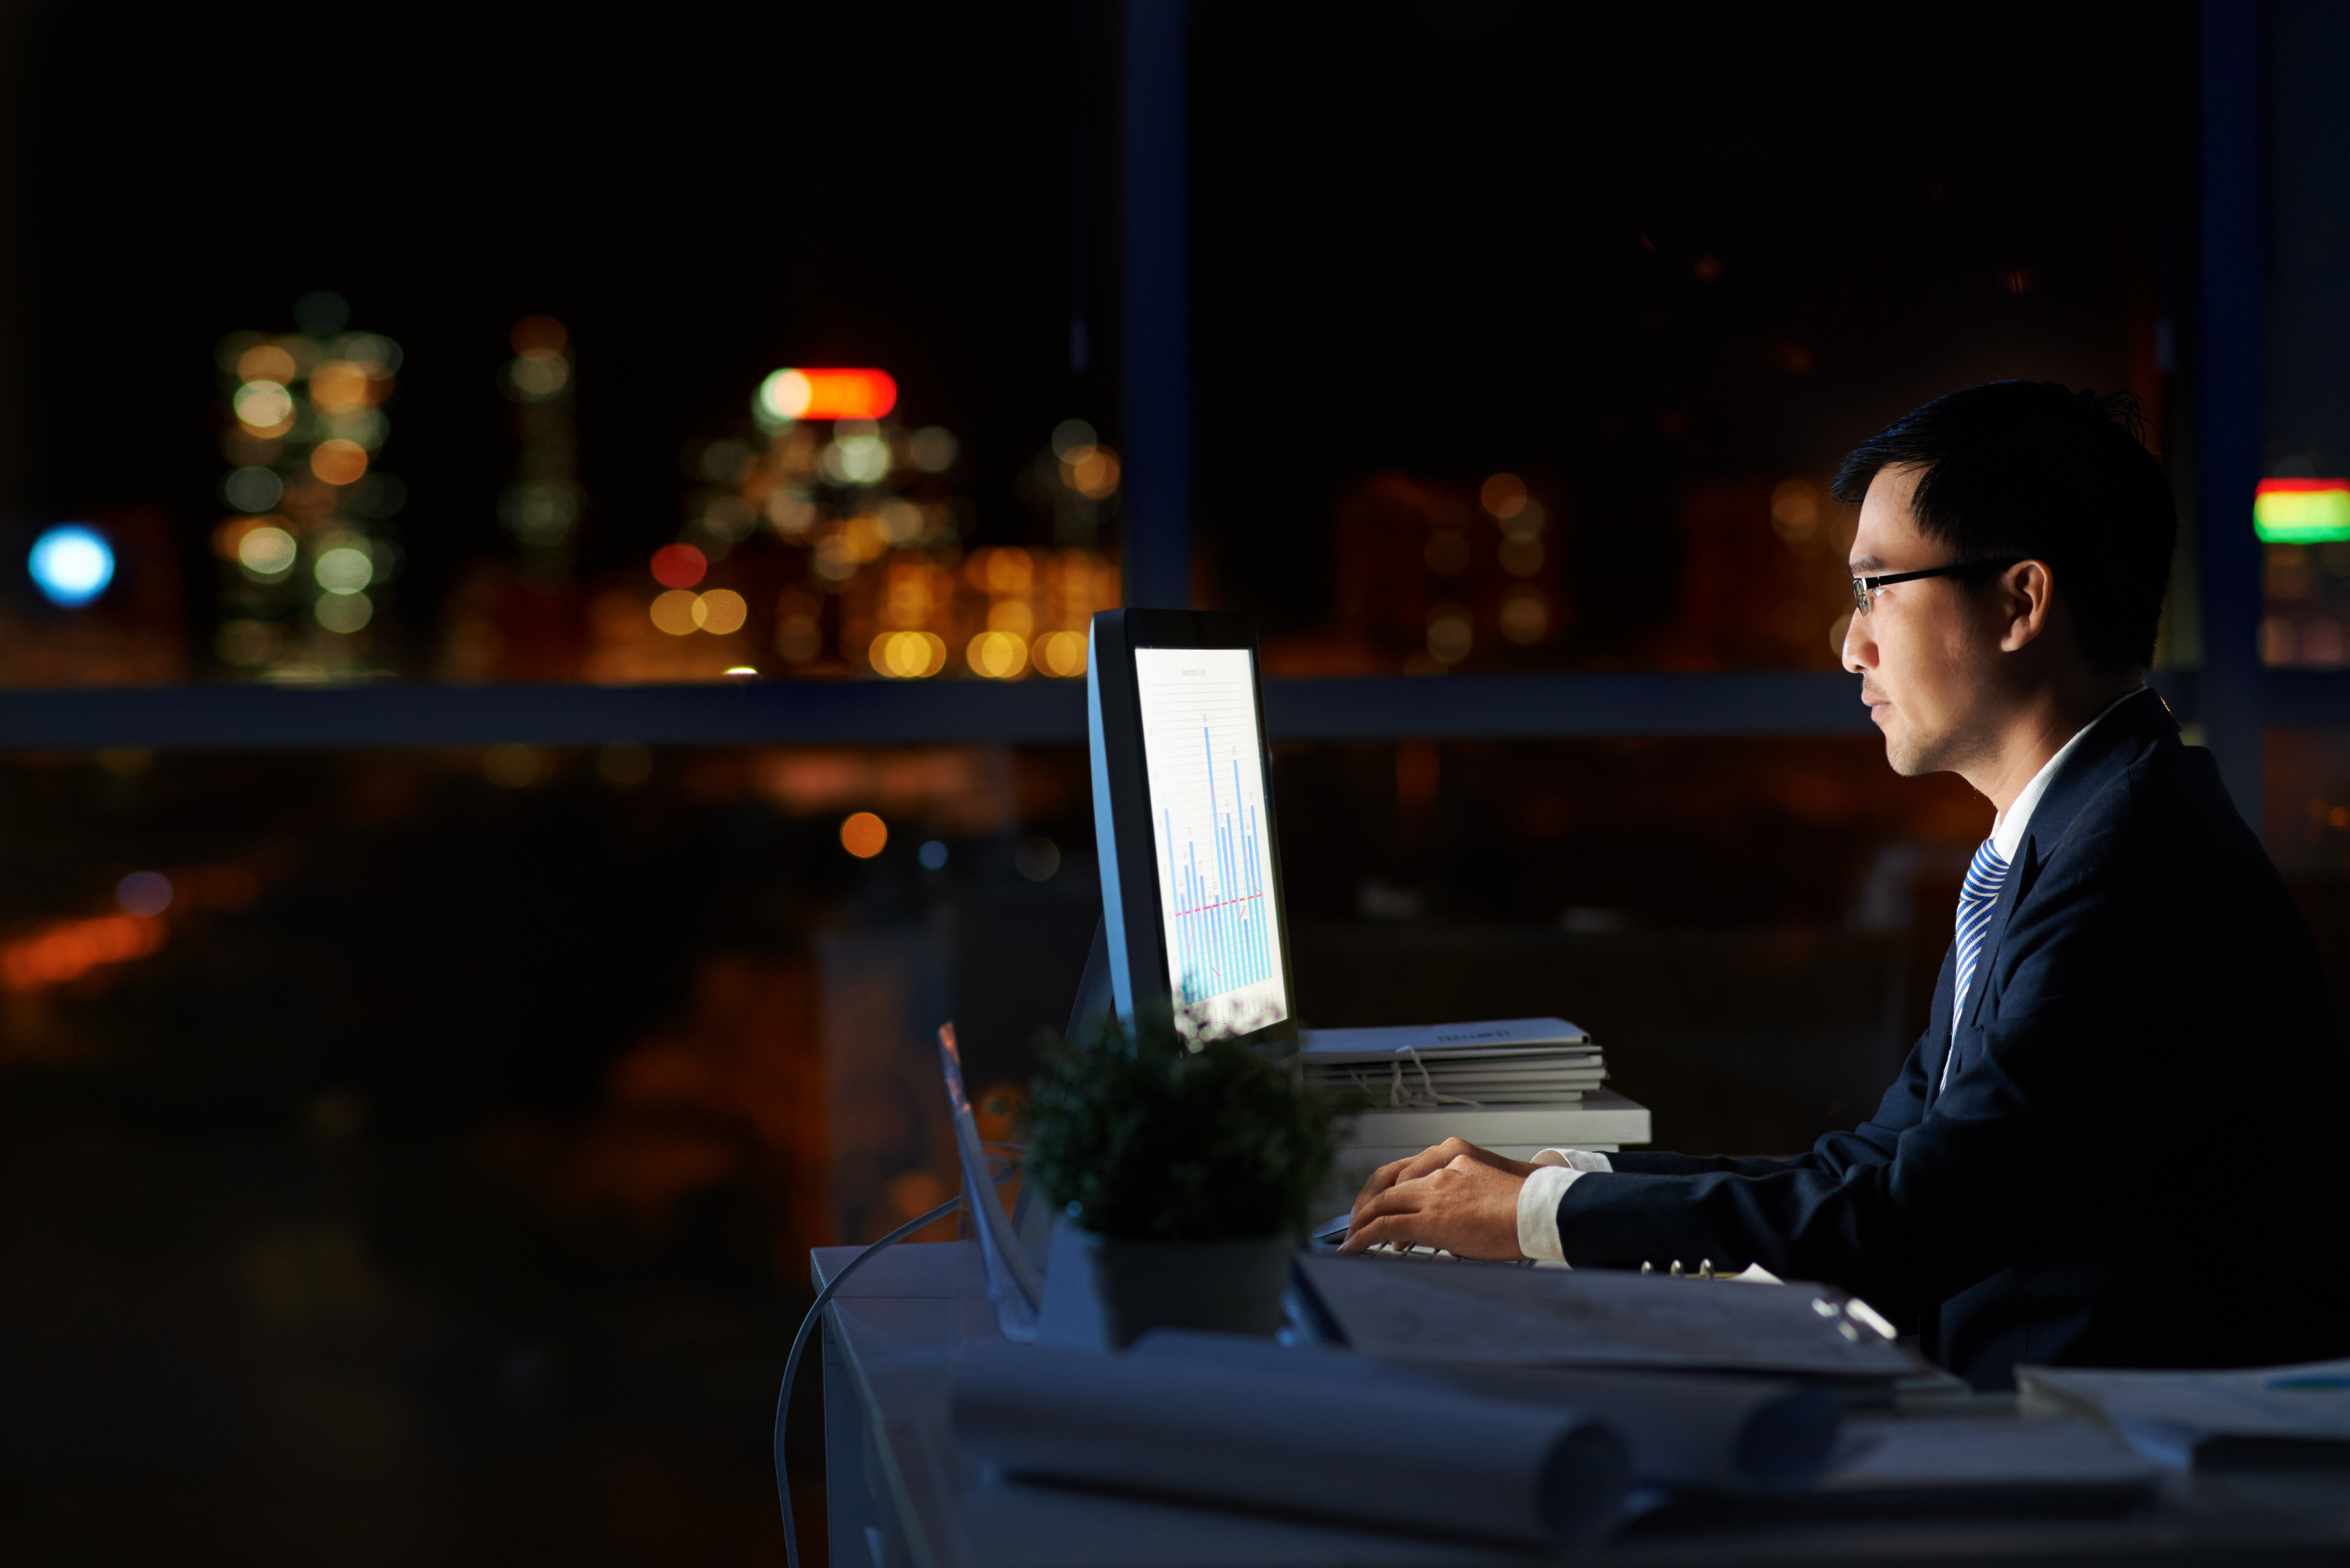 Man on computer trying to figure out how to reduce overtime